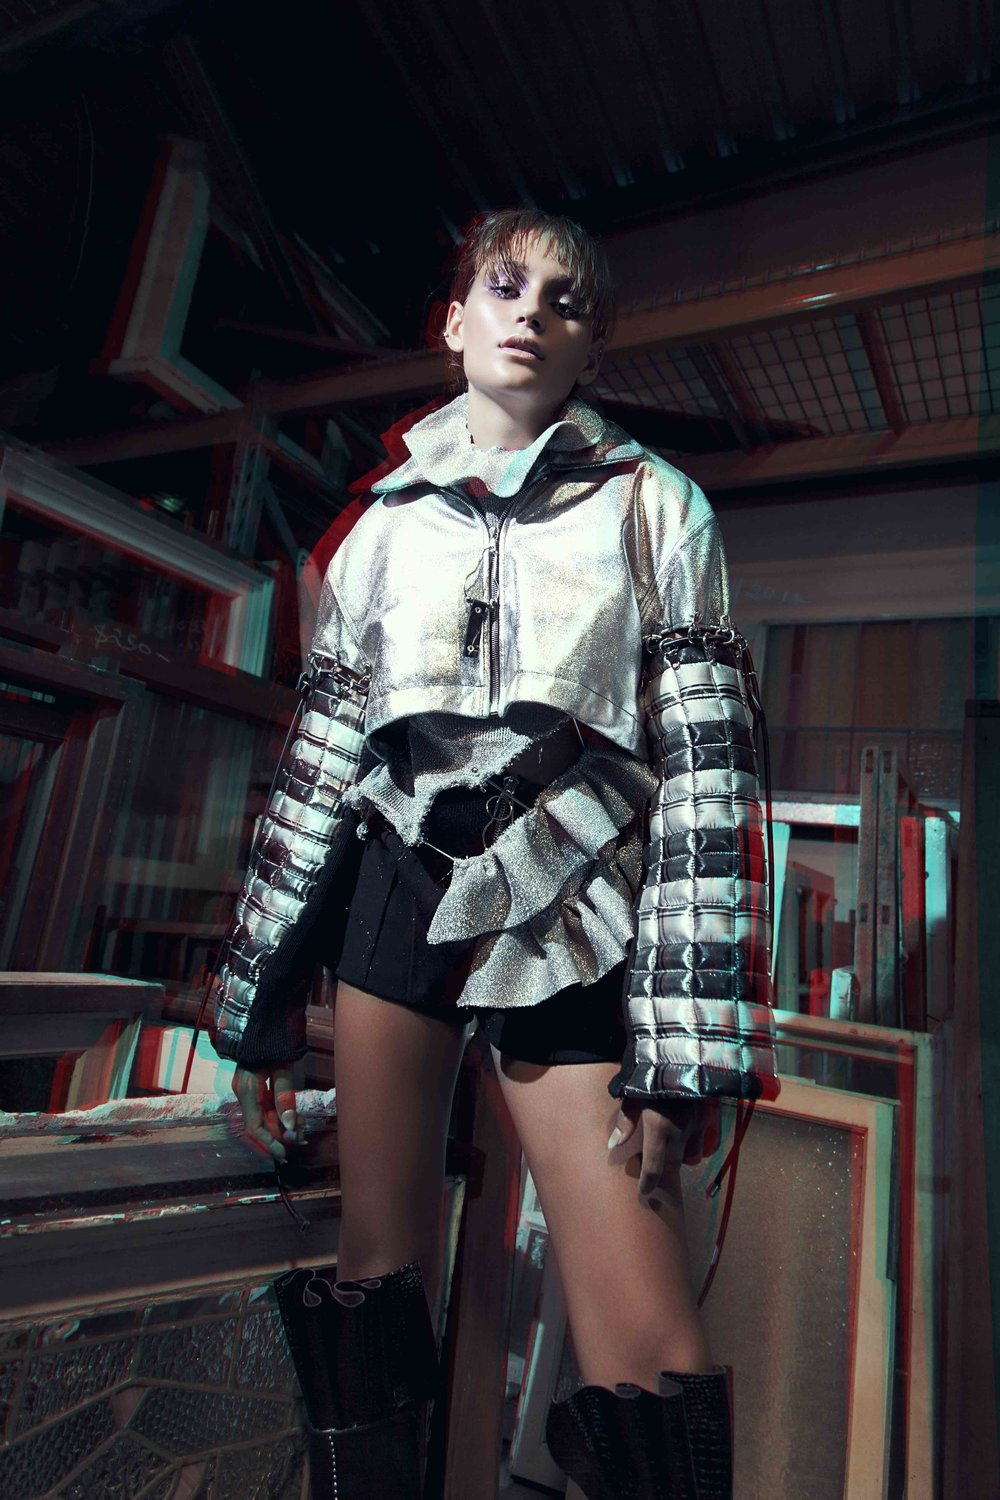 Top & Jacket: Isabella Jacuzzi / Boots: Zephyr Collection by Bronte Armstrong / Shorts: Isabella Jacuzzi